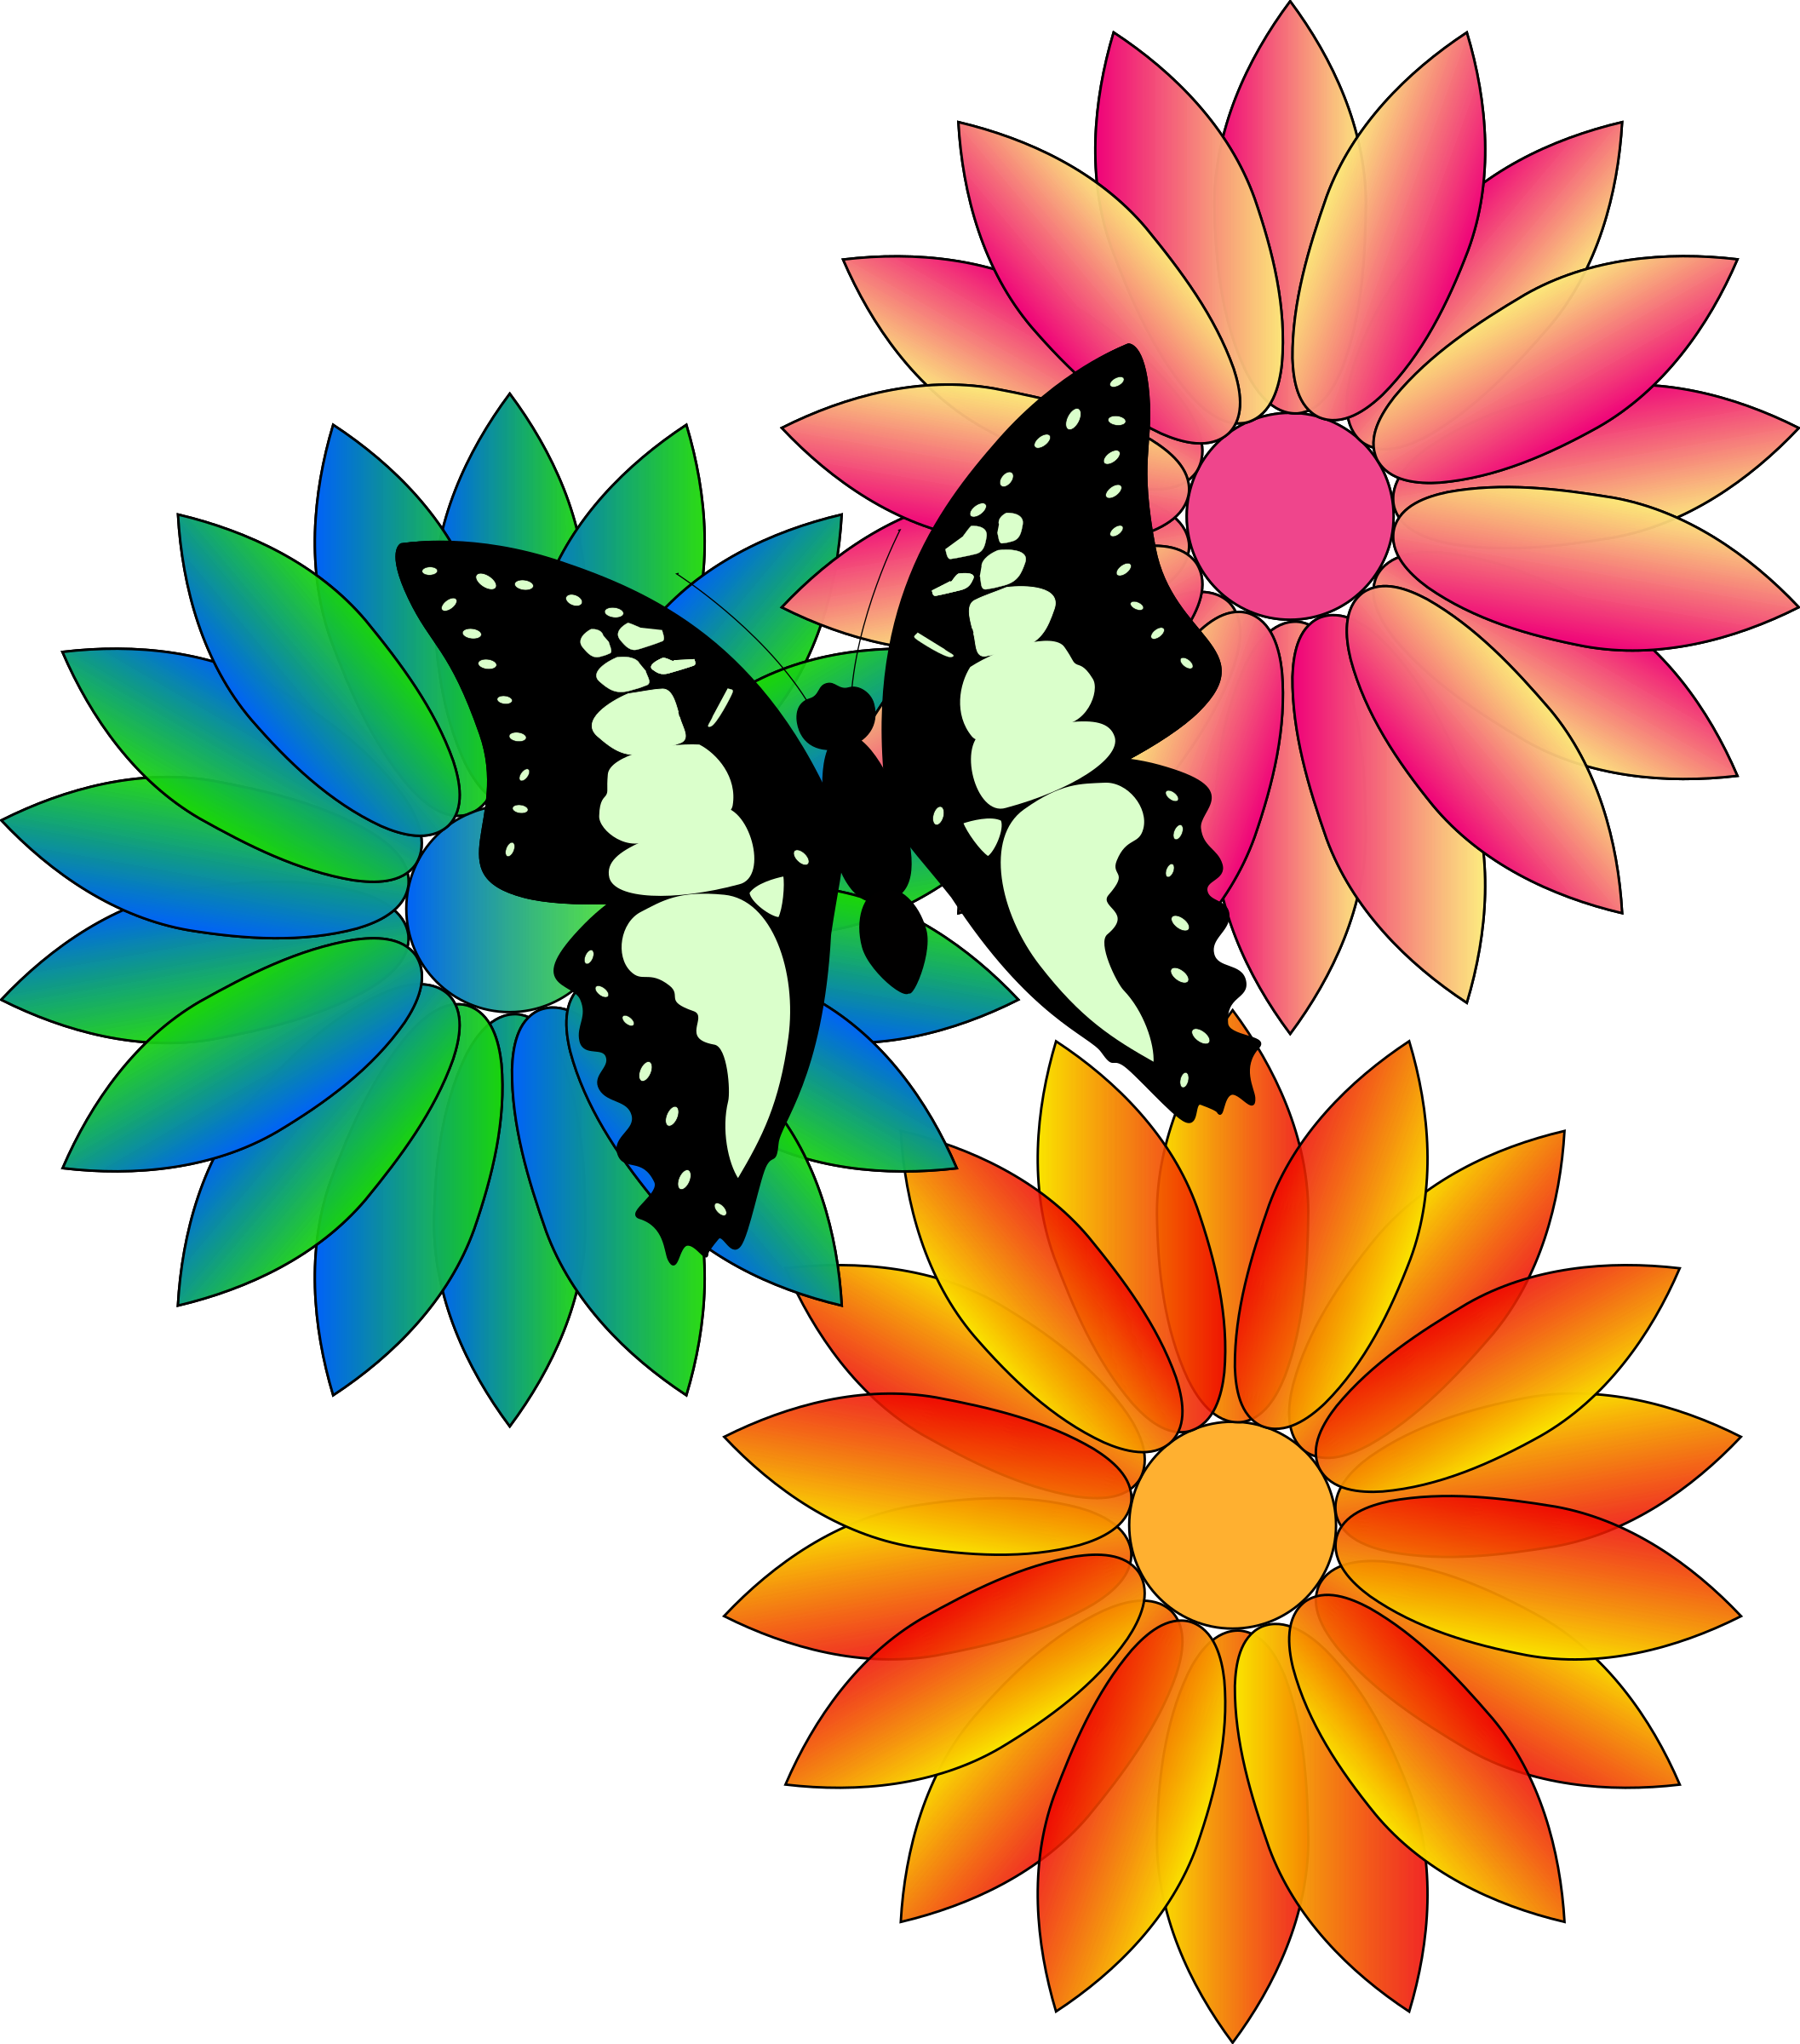 Spring flower clipart at getdrawings free for personal use 2114x2400 cartoon pictures of spring flowers image collections mightylinksfo